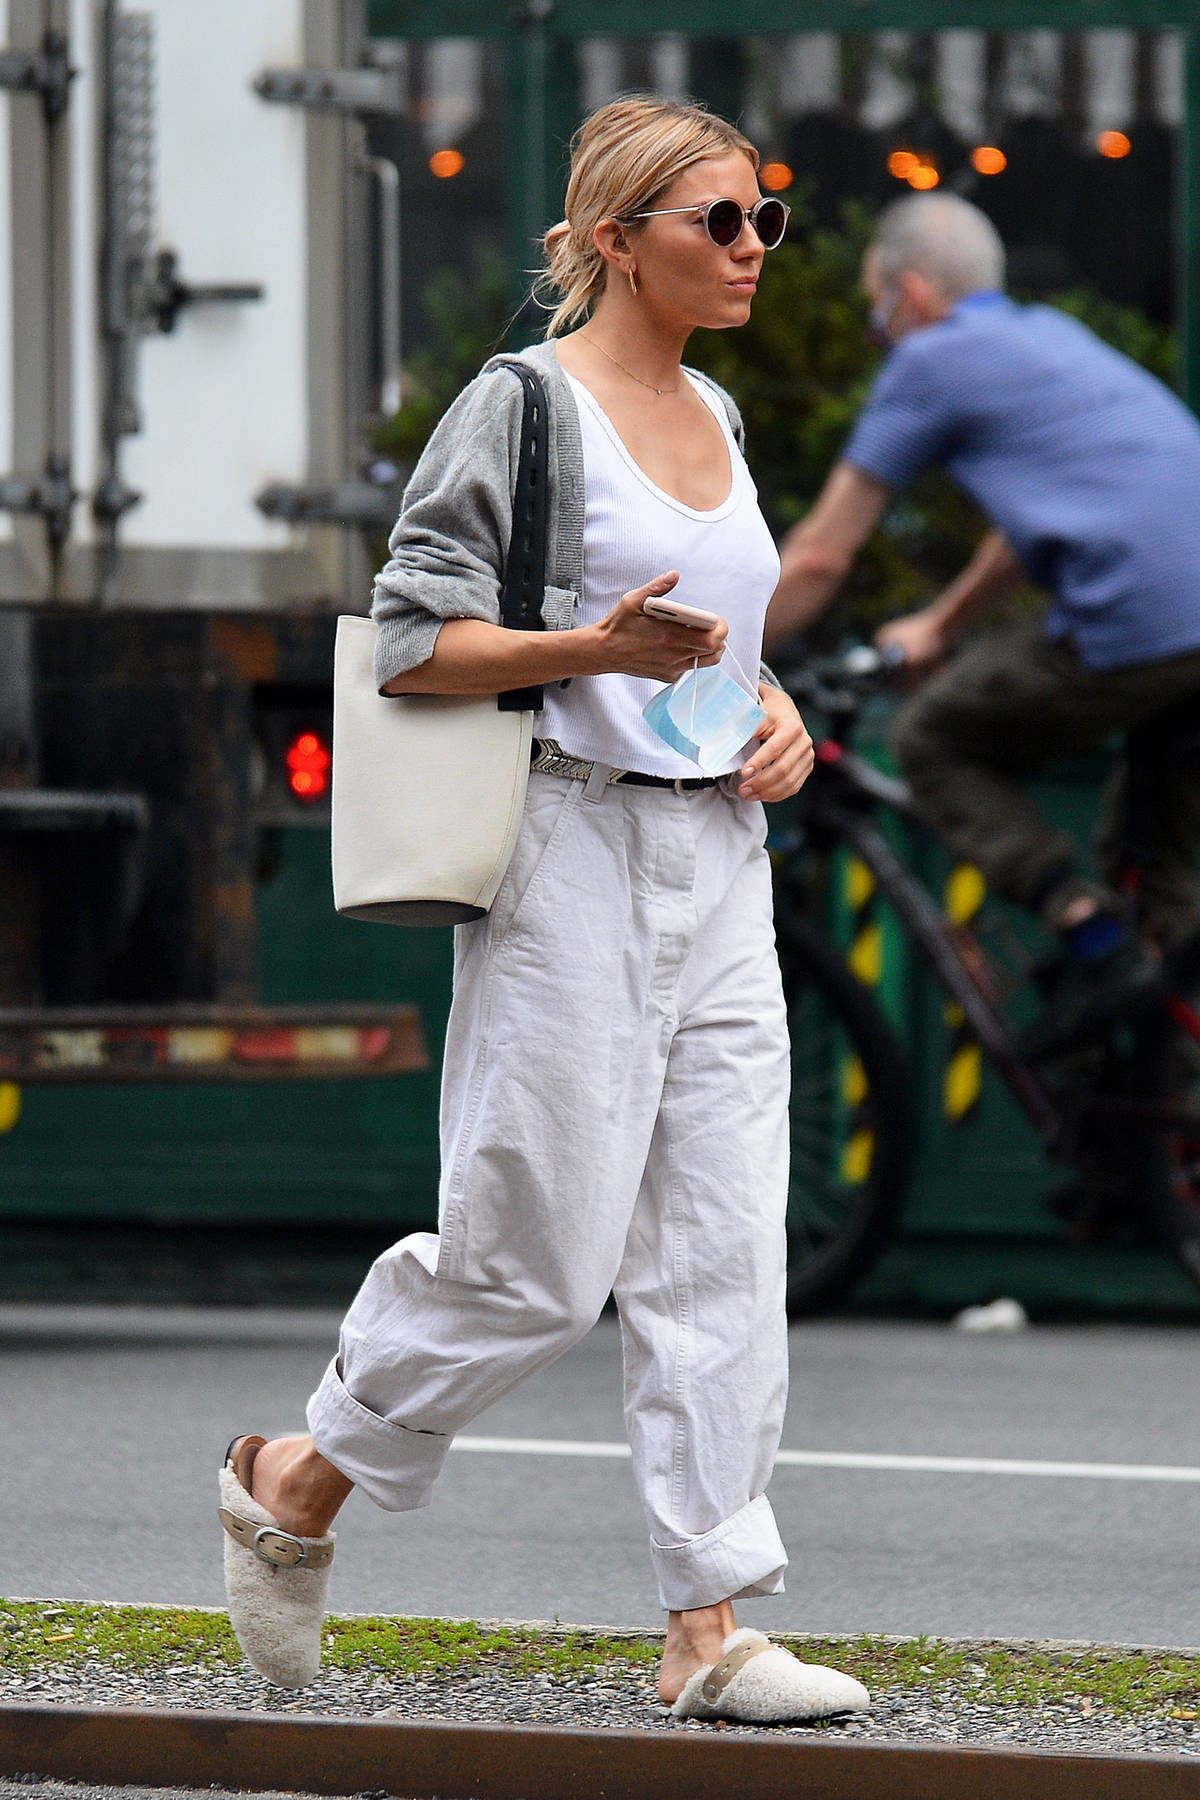 Sienna Miller keeps it casual while out running a few errands in New York City